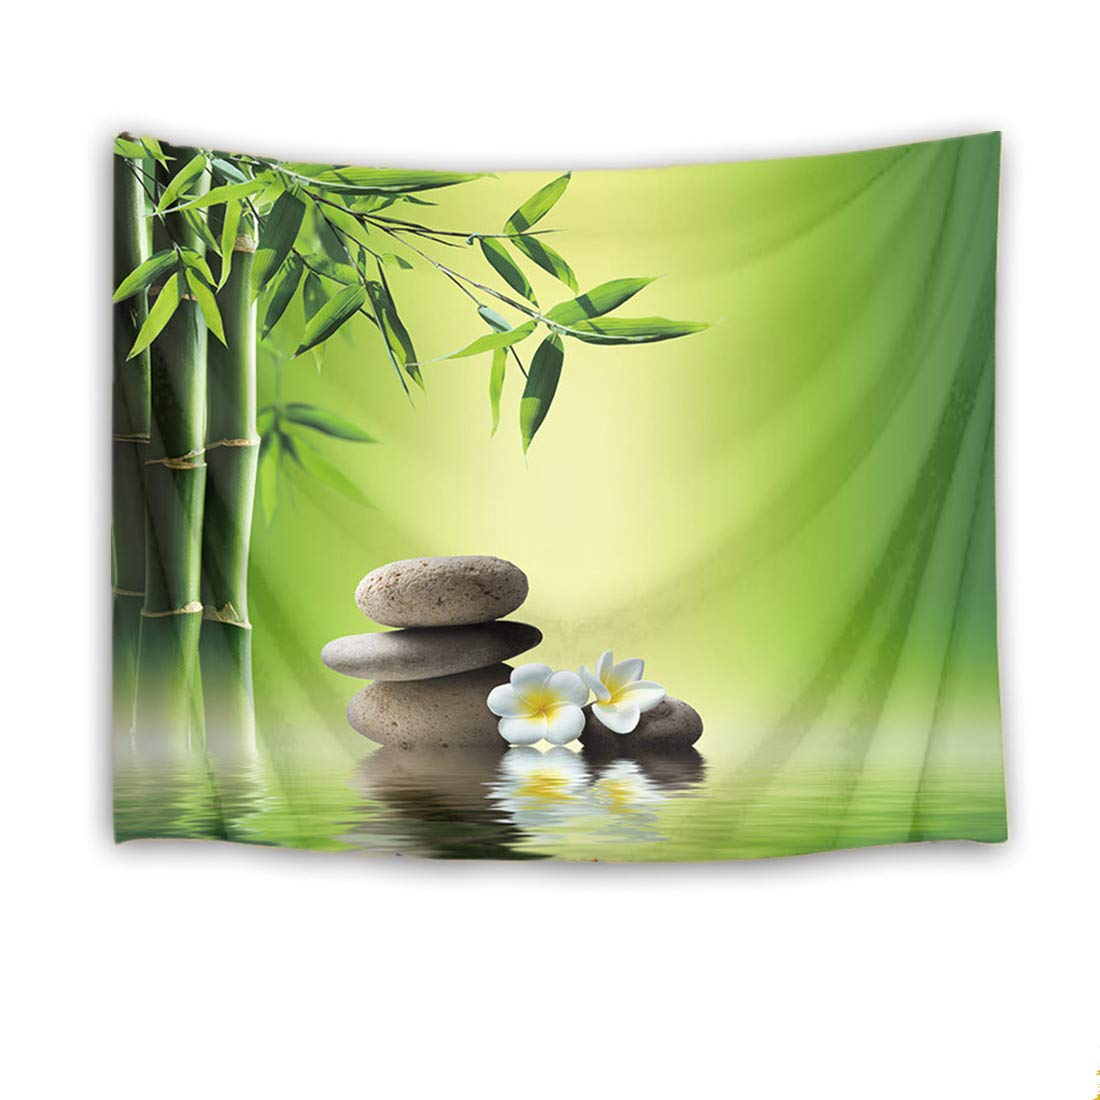 LB Zen Spa Tapestry Wall Hanging,Bamboo Stones and Floral in Water Tapestries,Japanese Garden Scenery Wall Decor for Dorm Bedroom Living Room,60 W X 40 H inch(Green)